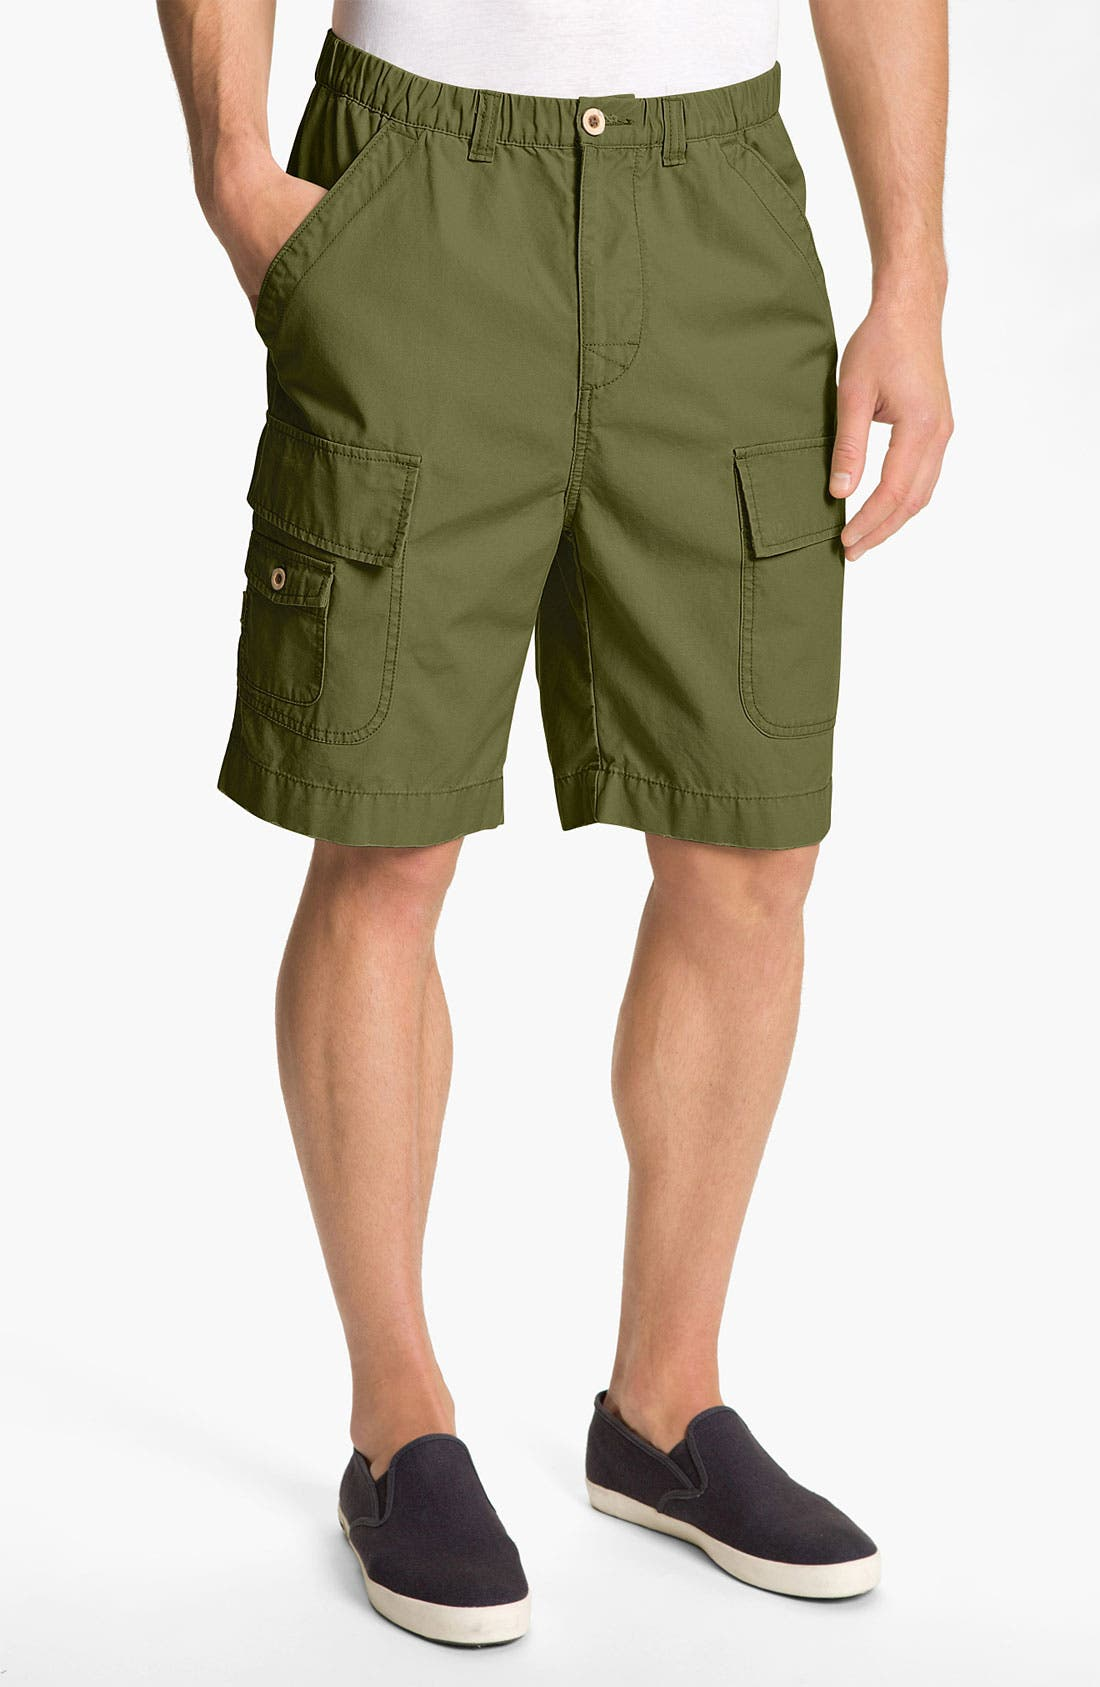 Alternate Image 1 Selected - Tommy Bahama 'New Largo' Cargo Shorts